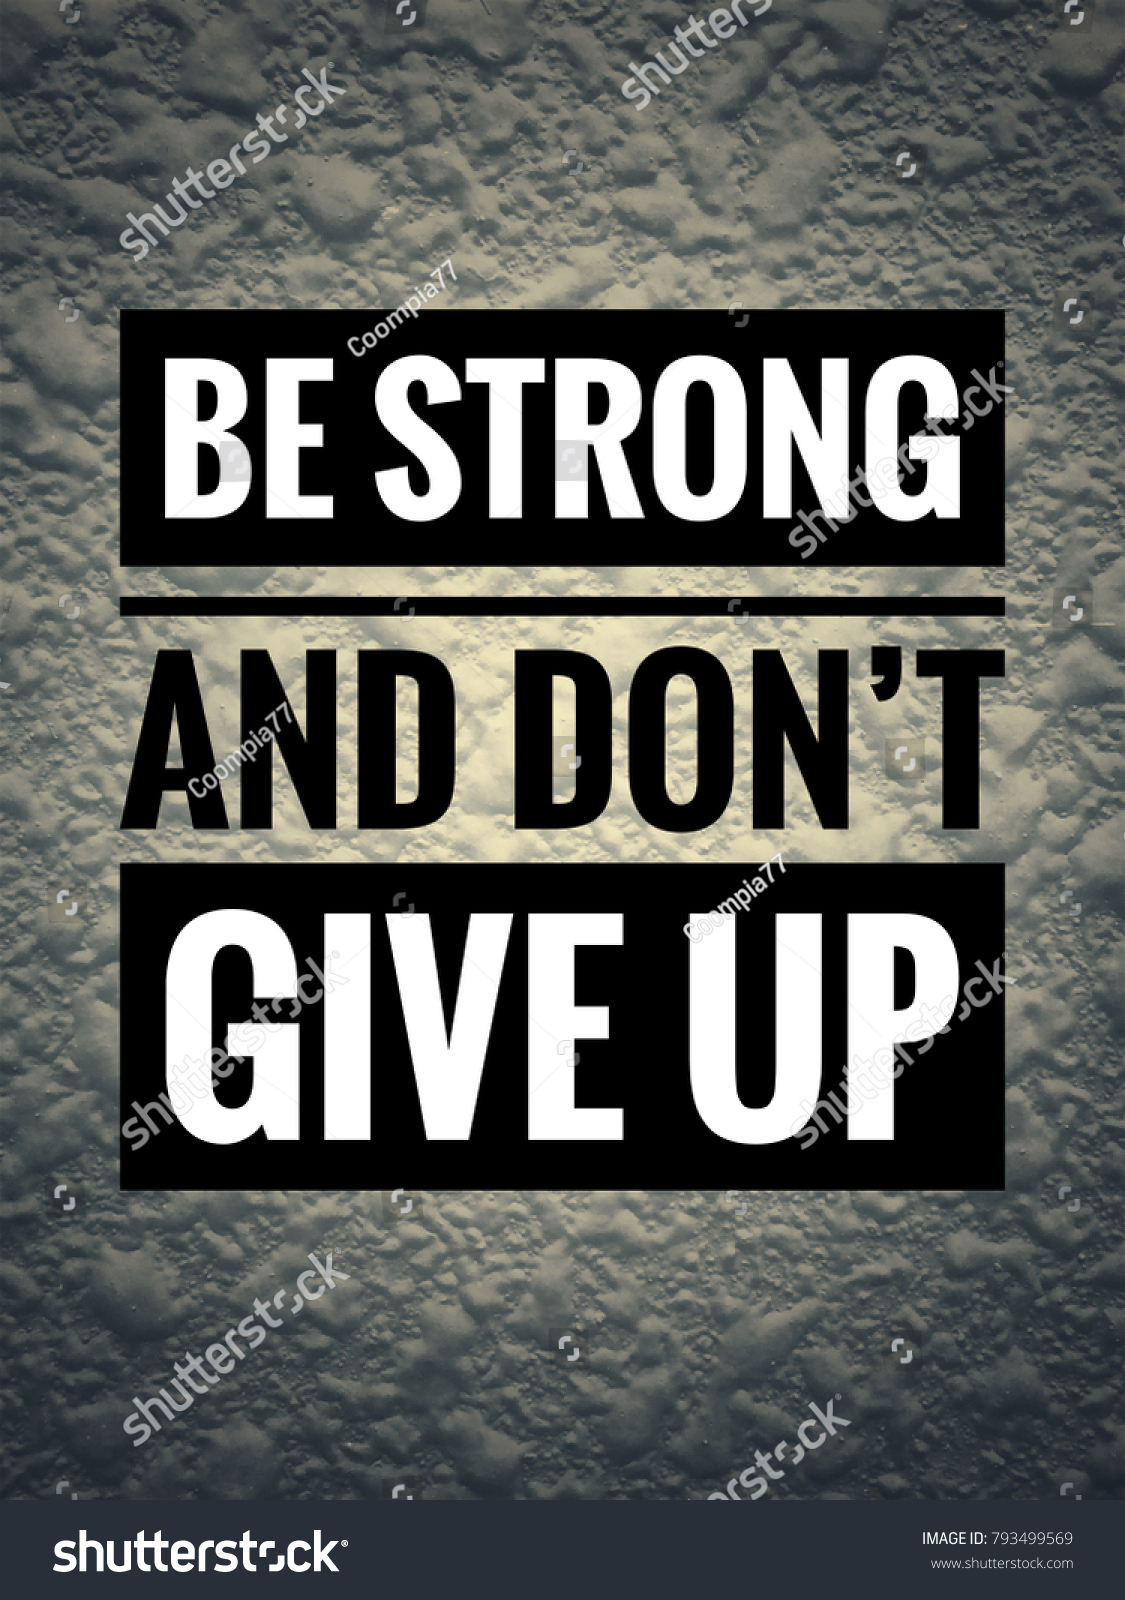 Awesome Motivational And Inspirational Quotes   Be Strong And Donu0027t Give Up. With  Vintage